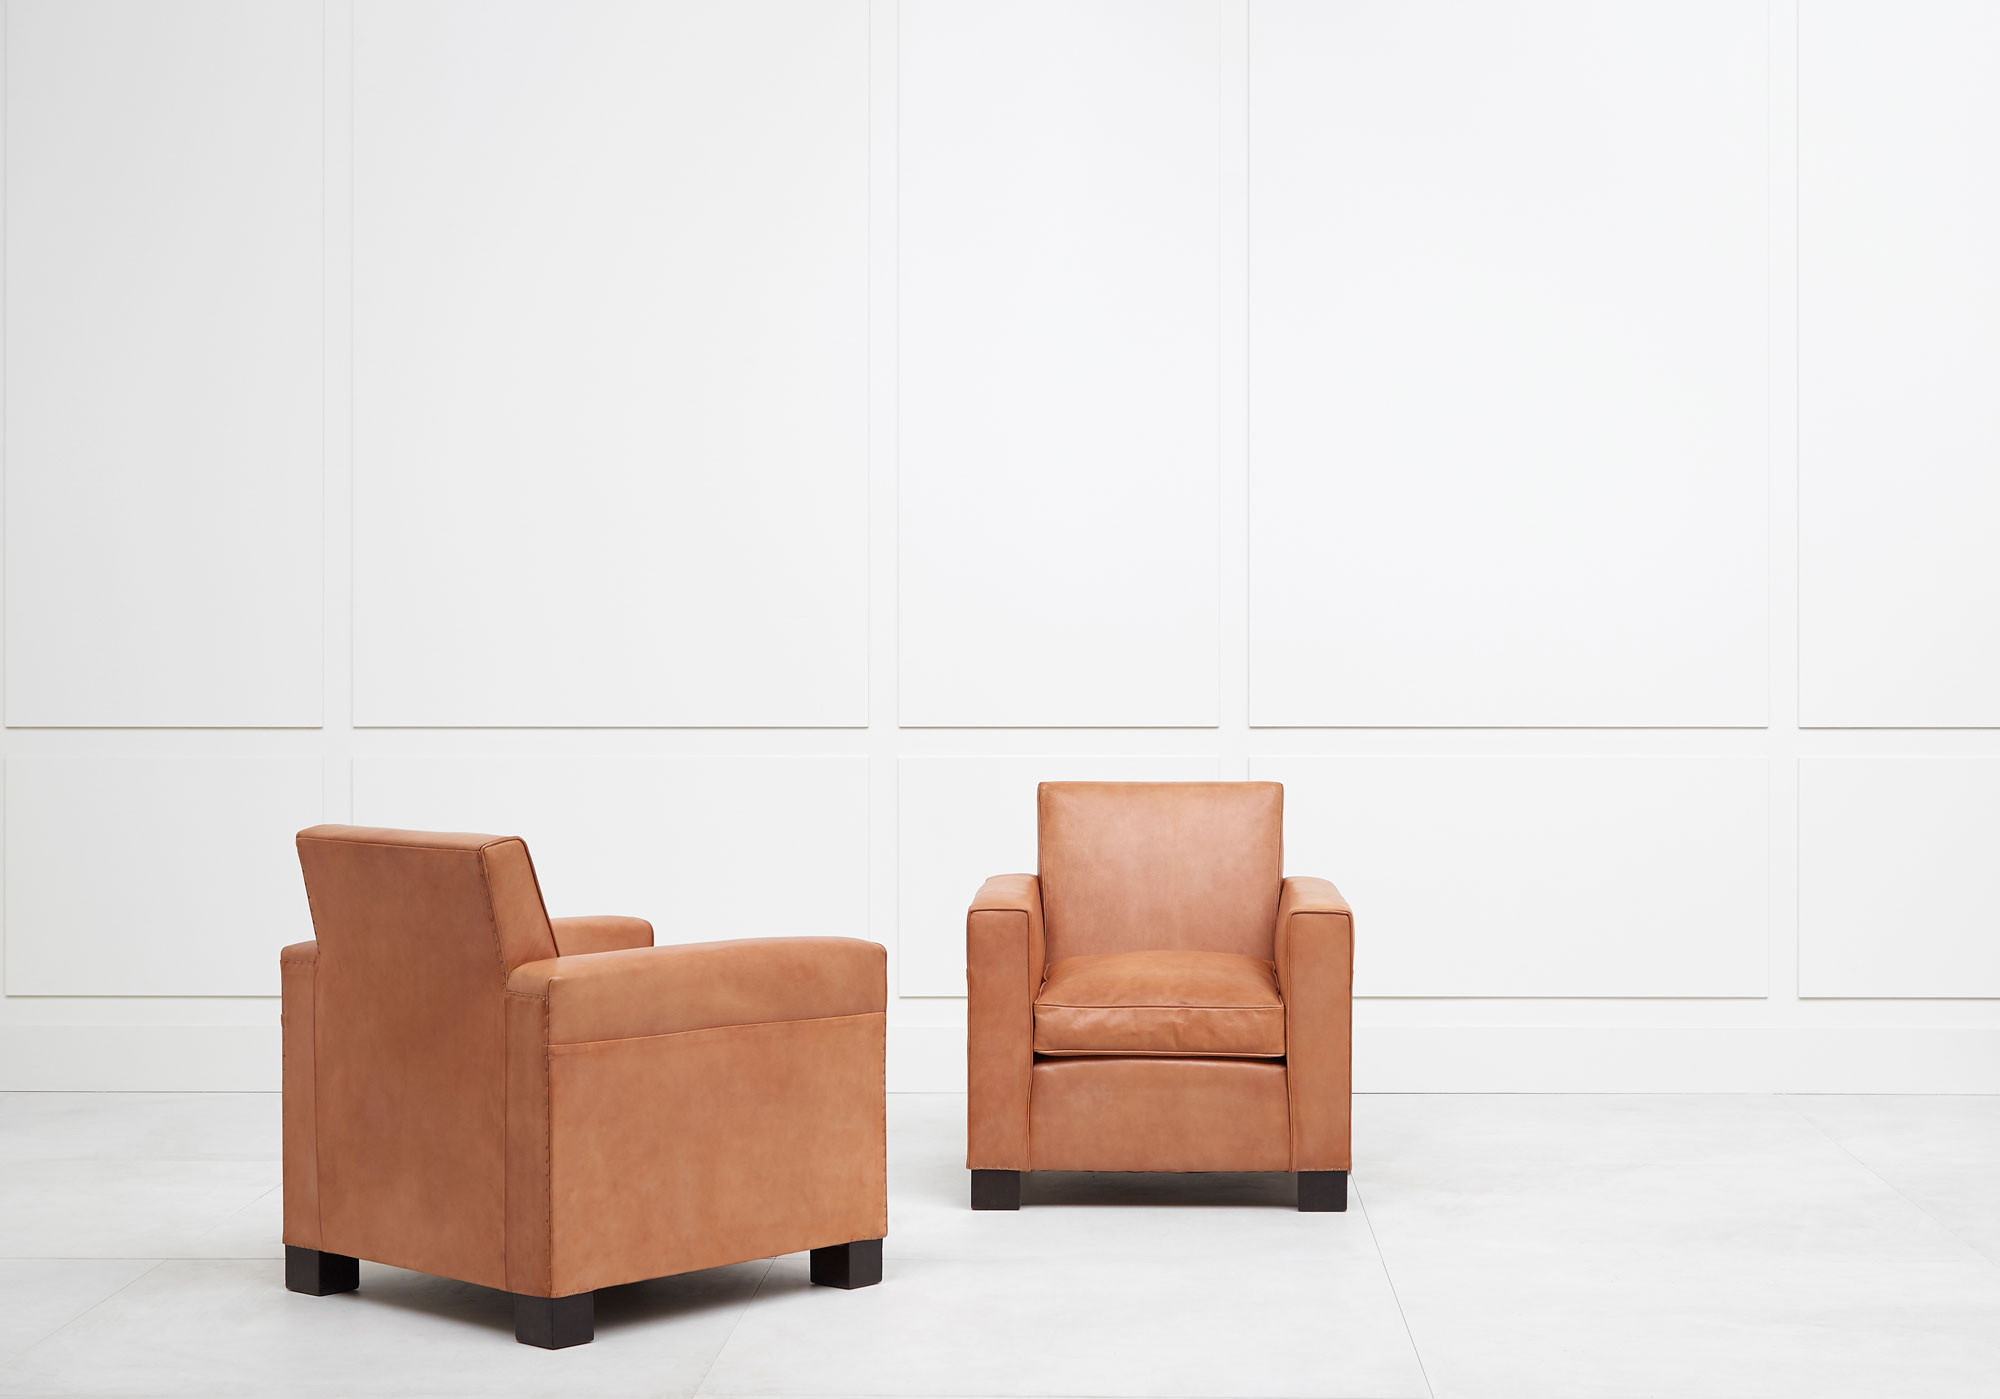 Jean-Charles Moreux, Rare pair of leather armchairs, vue 02